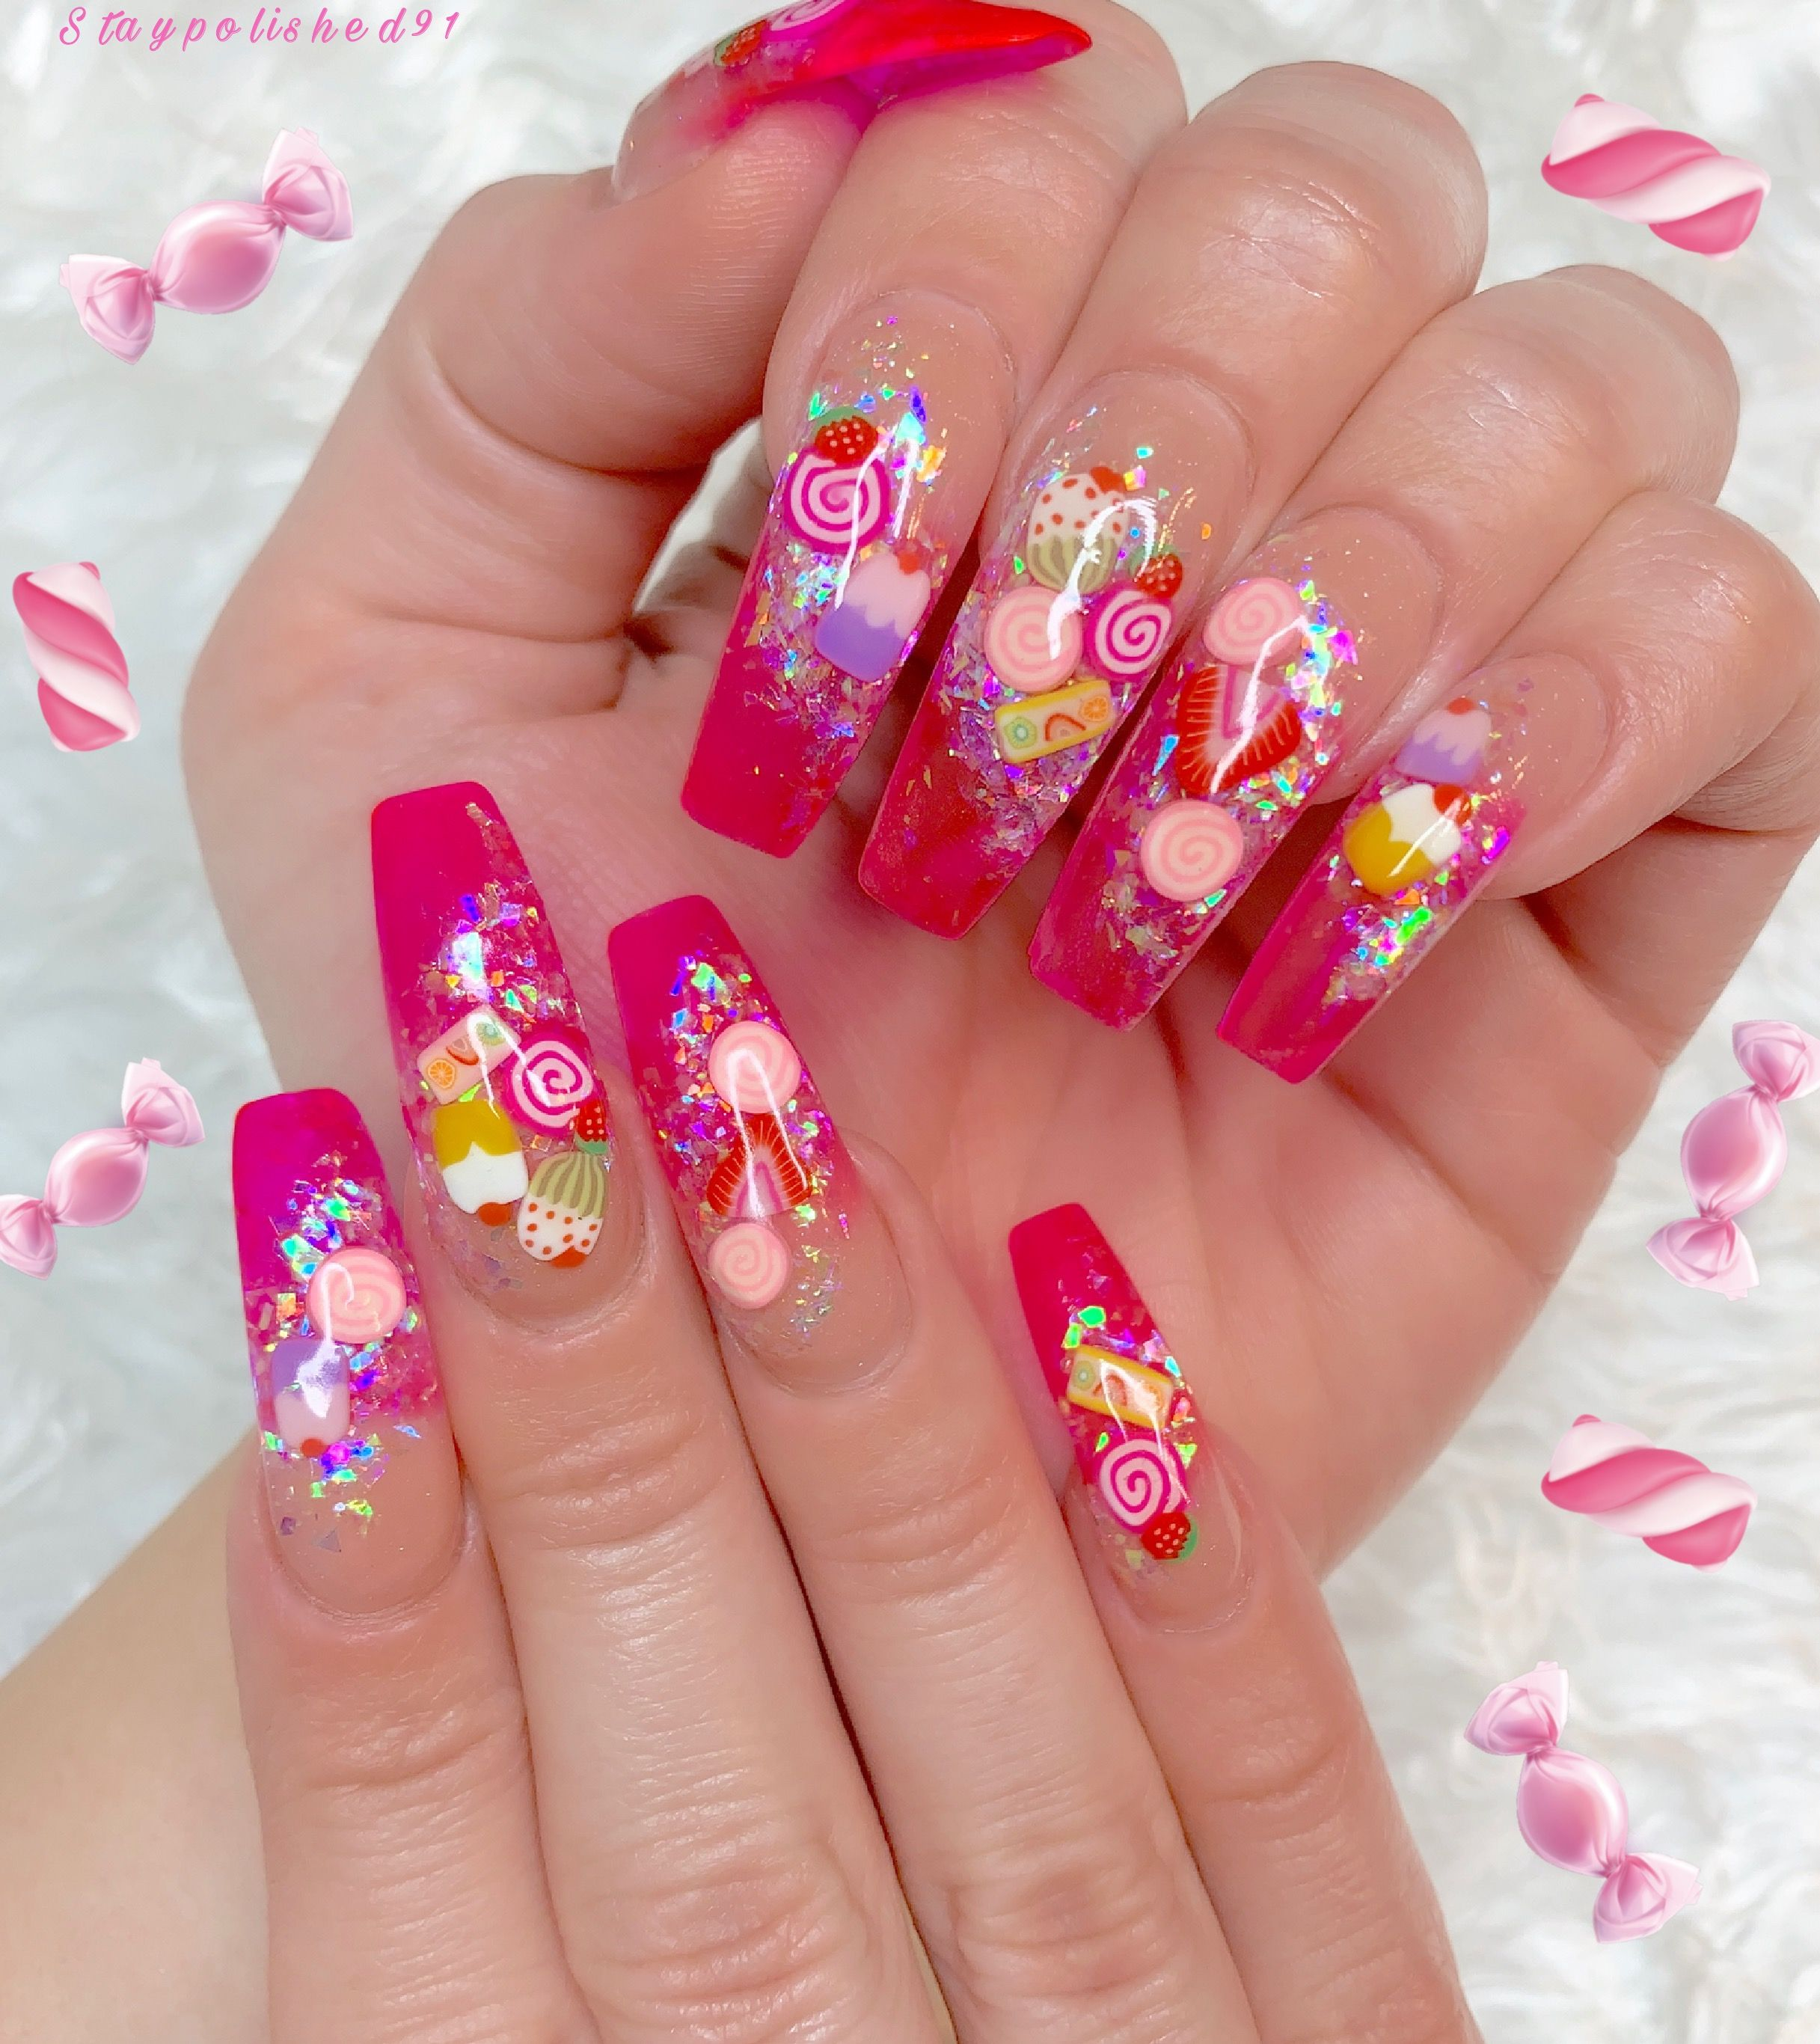 Staypolished91 Instagram In 2020 Fruit Nail Designs Kawaii Nails Encapsulated Nails